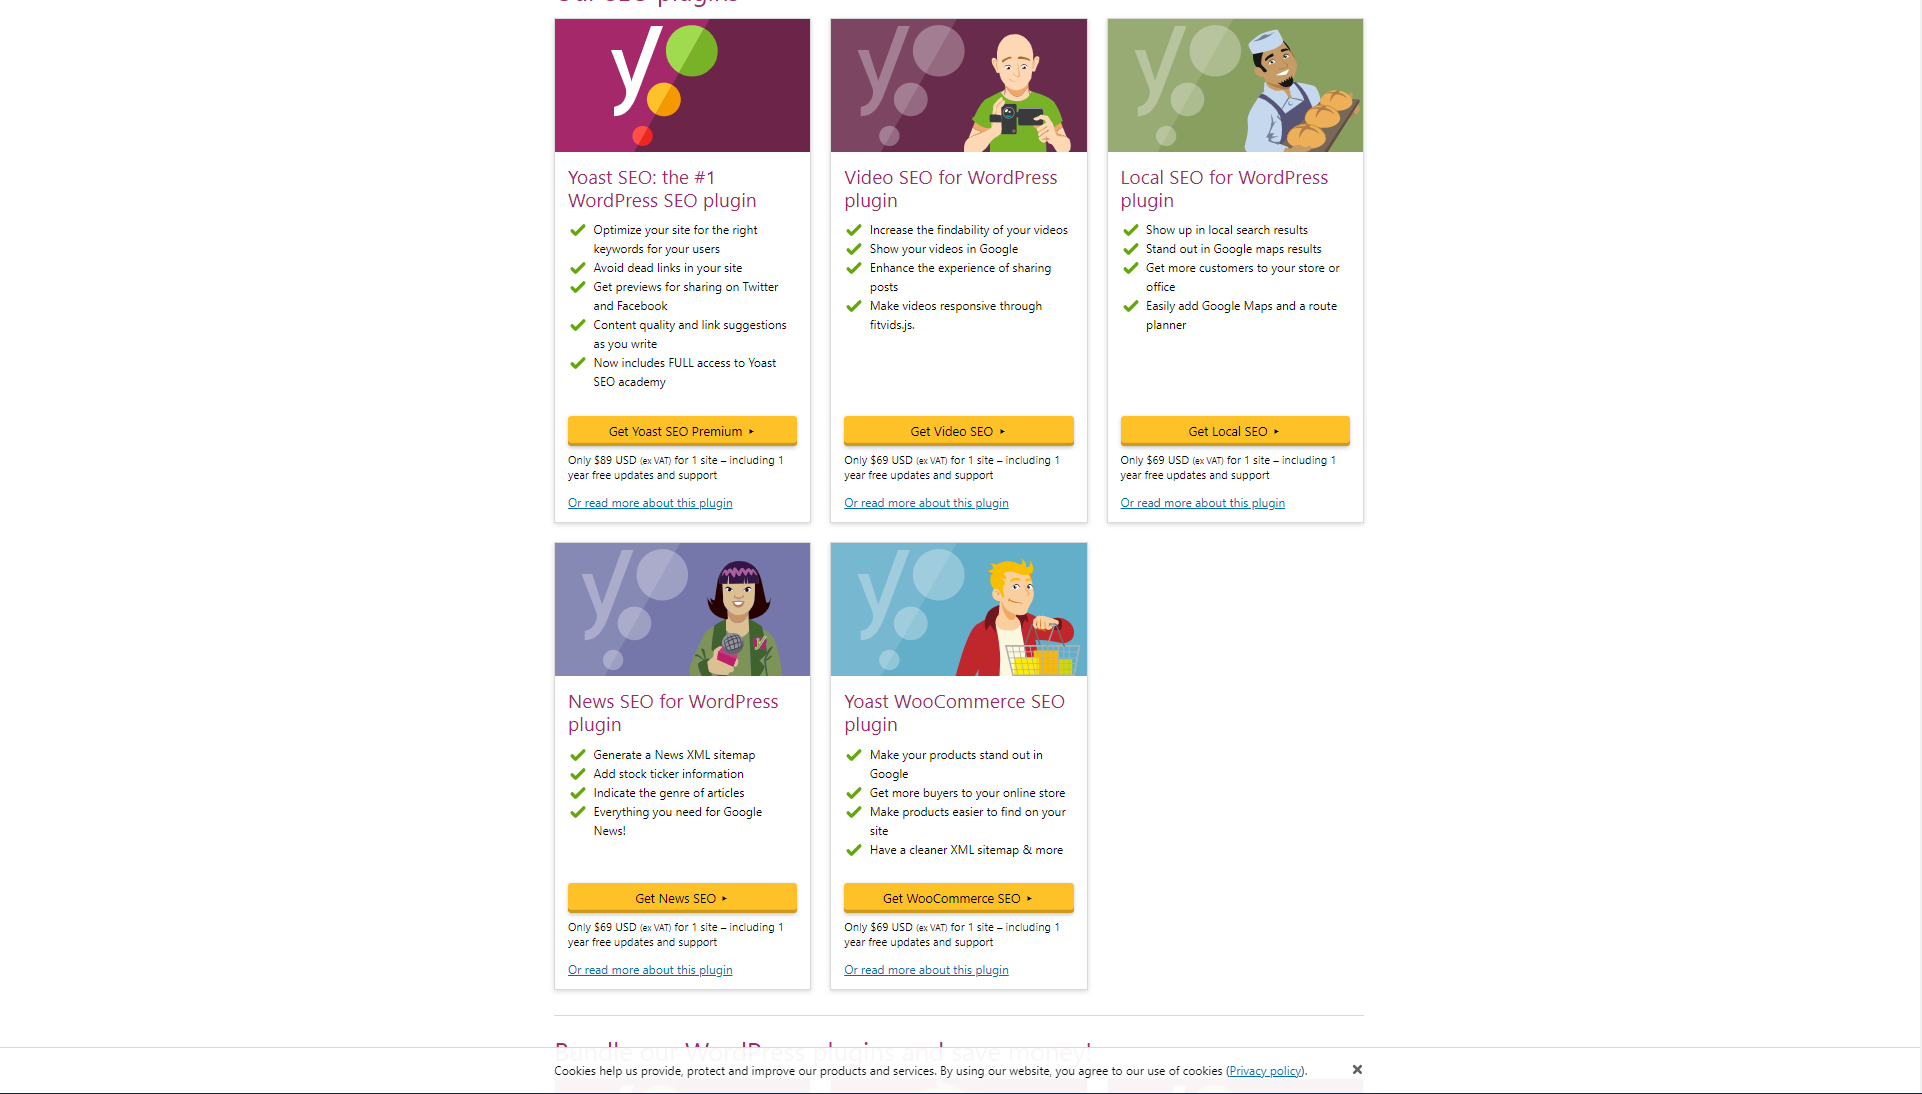 Migrate from Yoast to Rank Math | Easily Switch from Yoast to Rank Math Fast - Yoast Premium Screenshot off their website